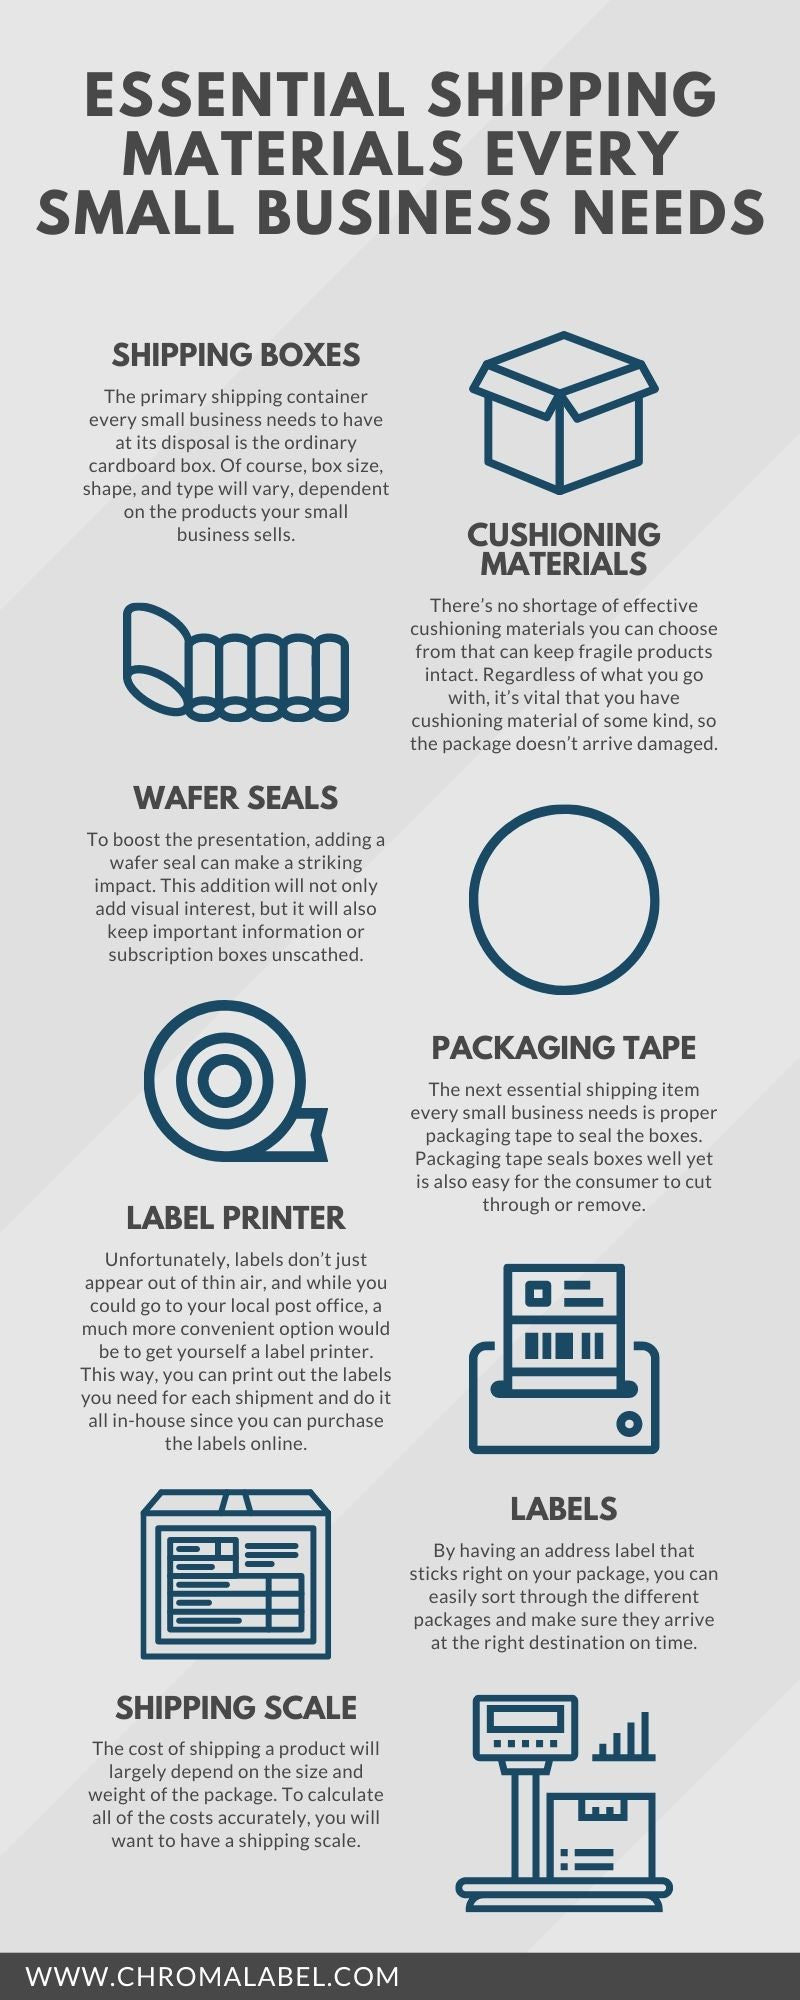 Essential Shipping Materials Every Small Business Needs